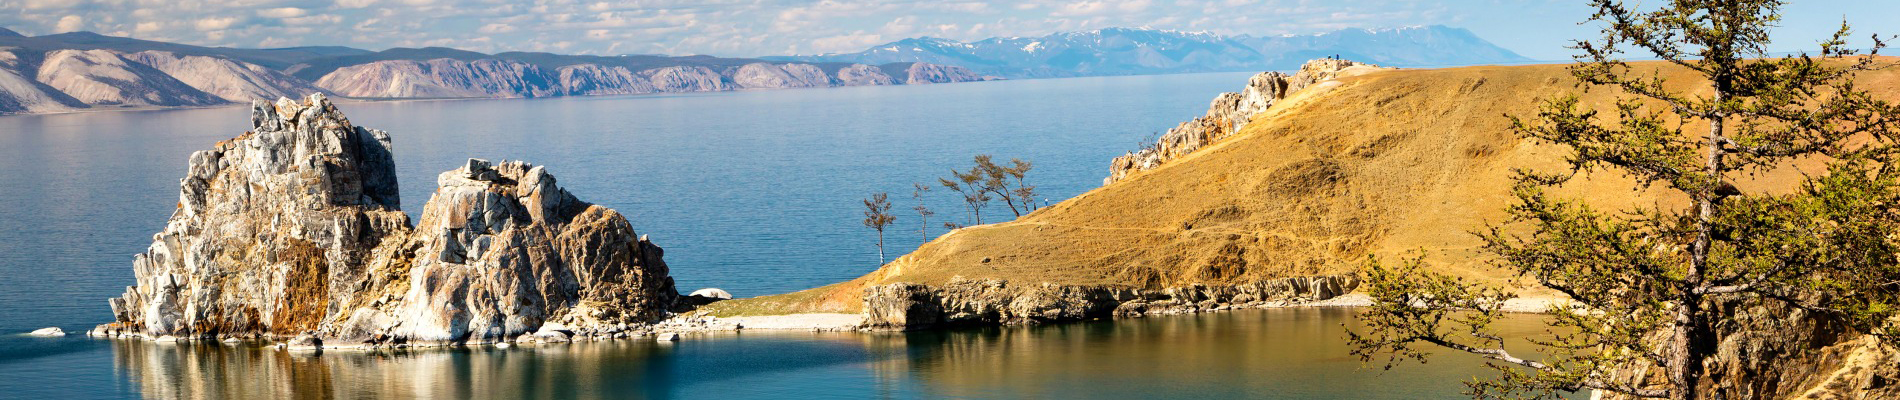 Lake Baikal and Buryatia